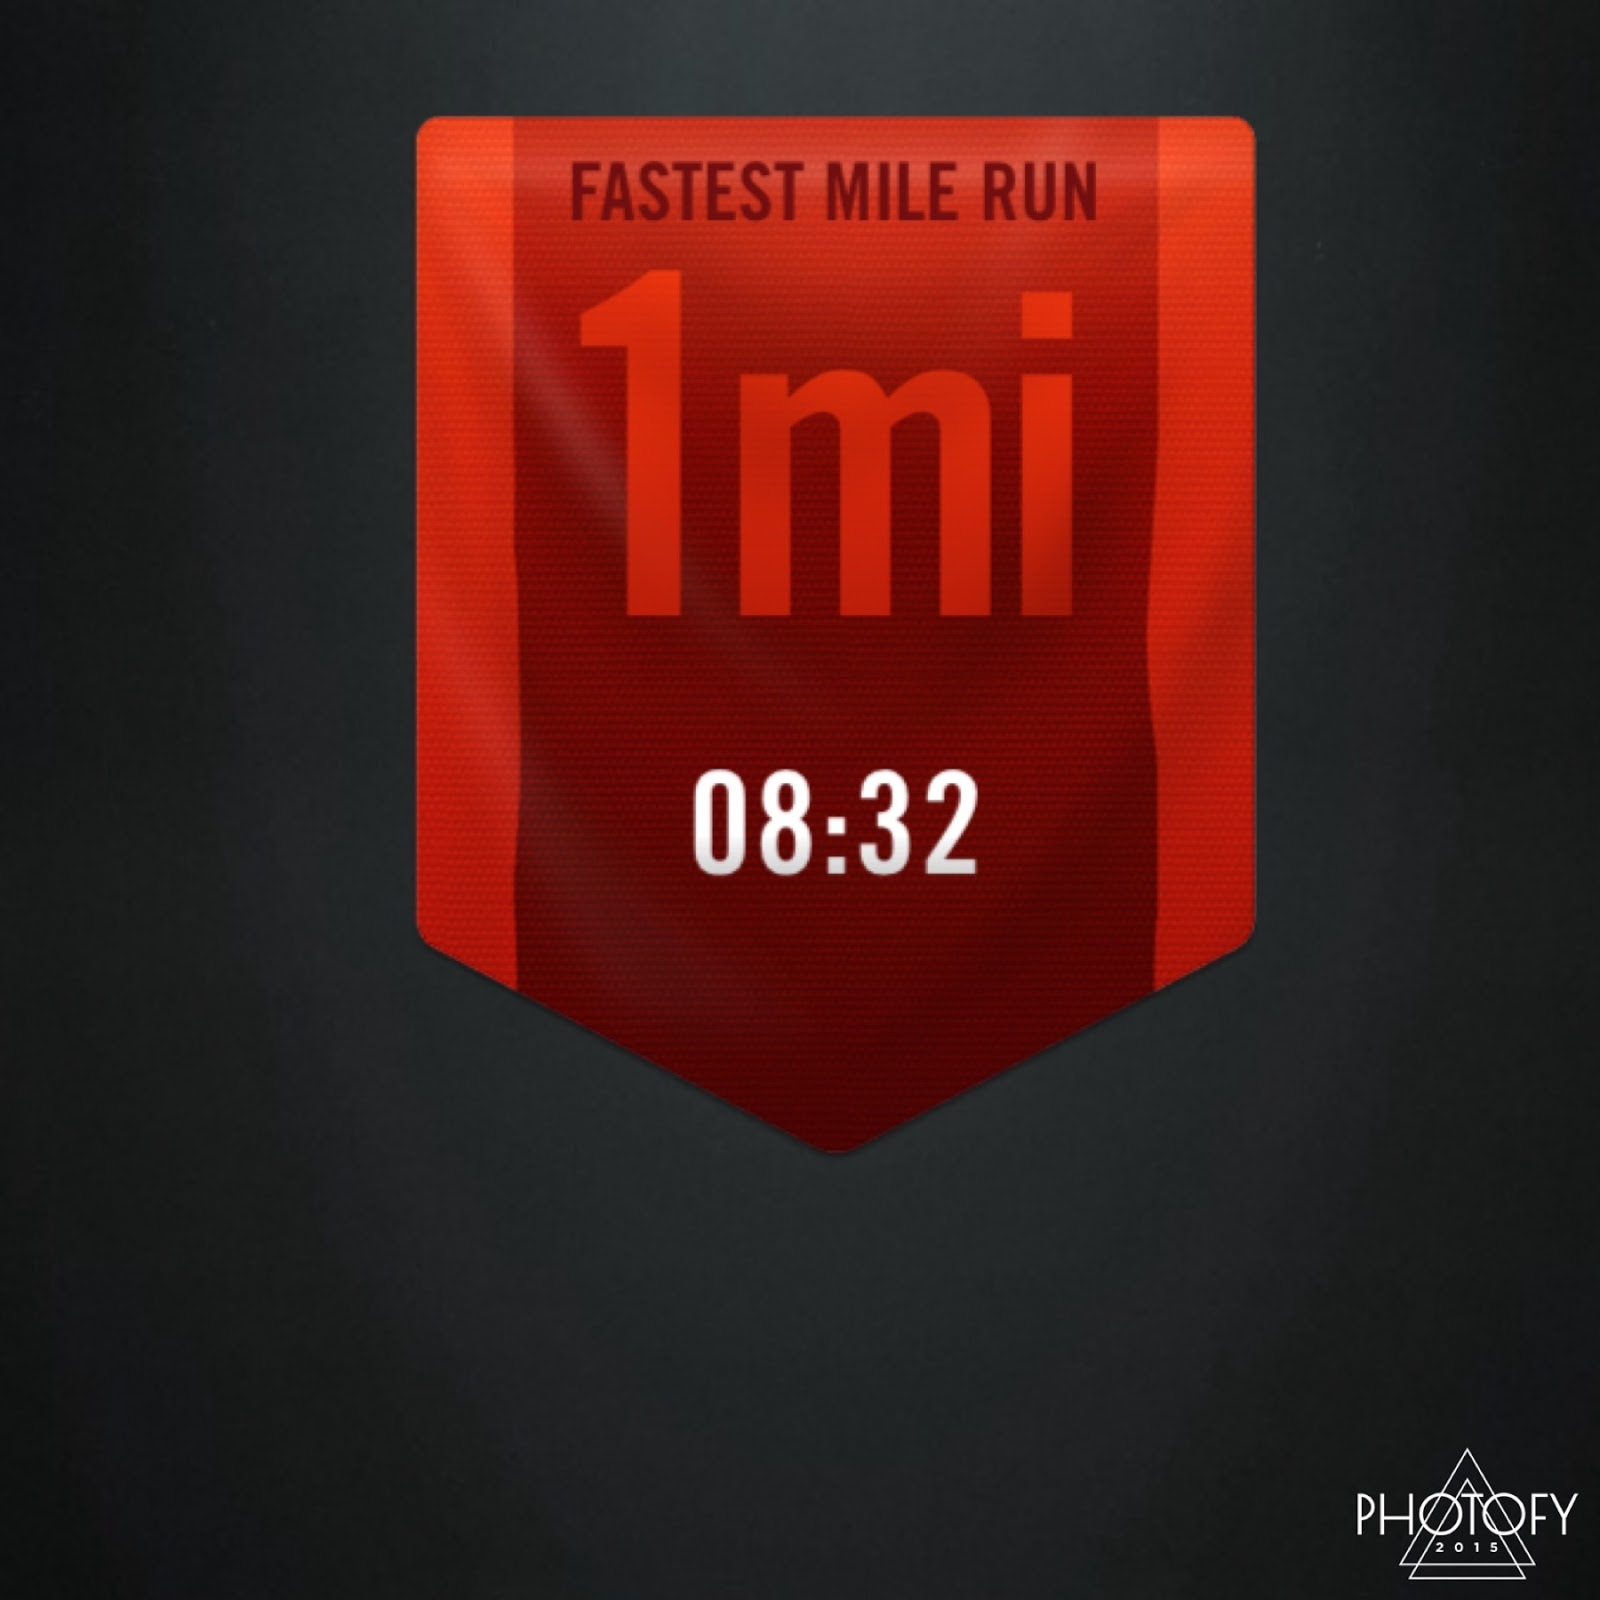 fastest mile to date! training for dopey challenge